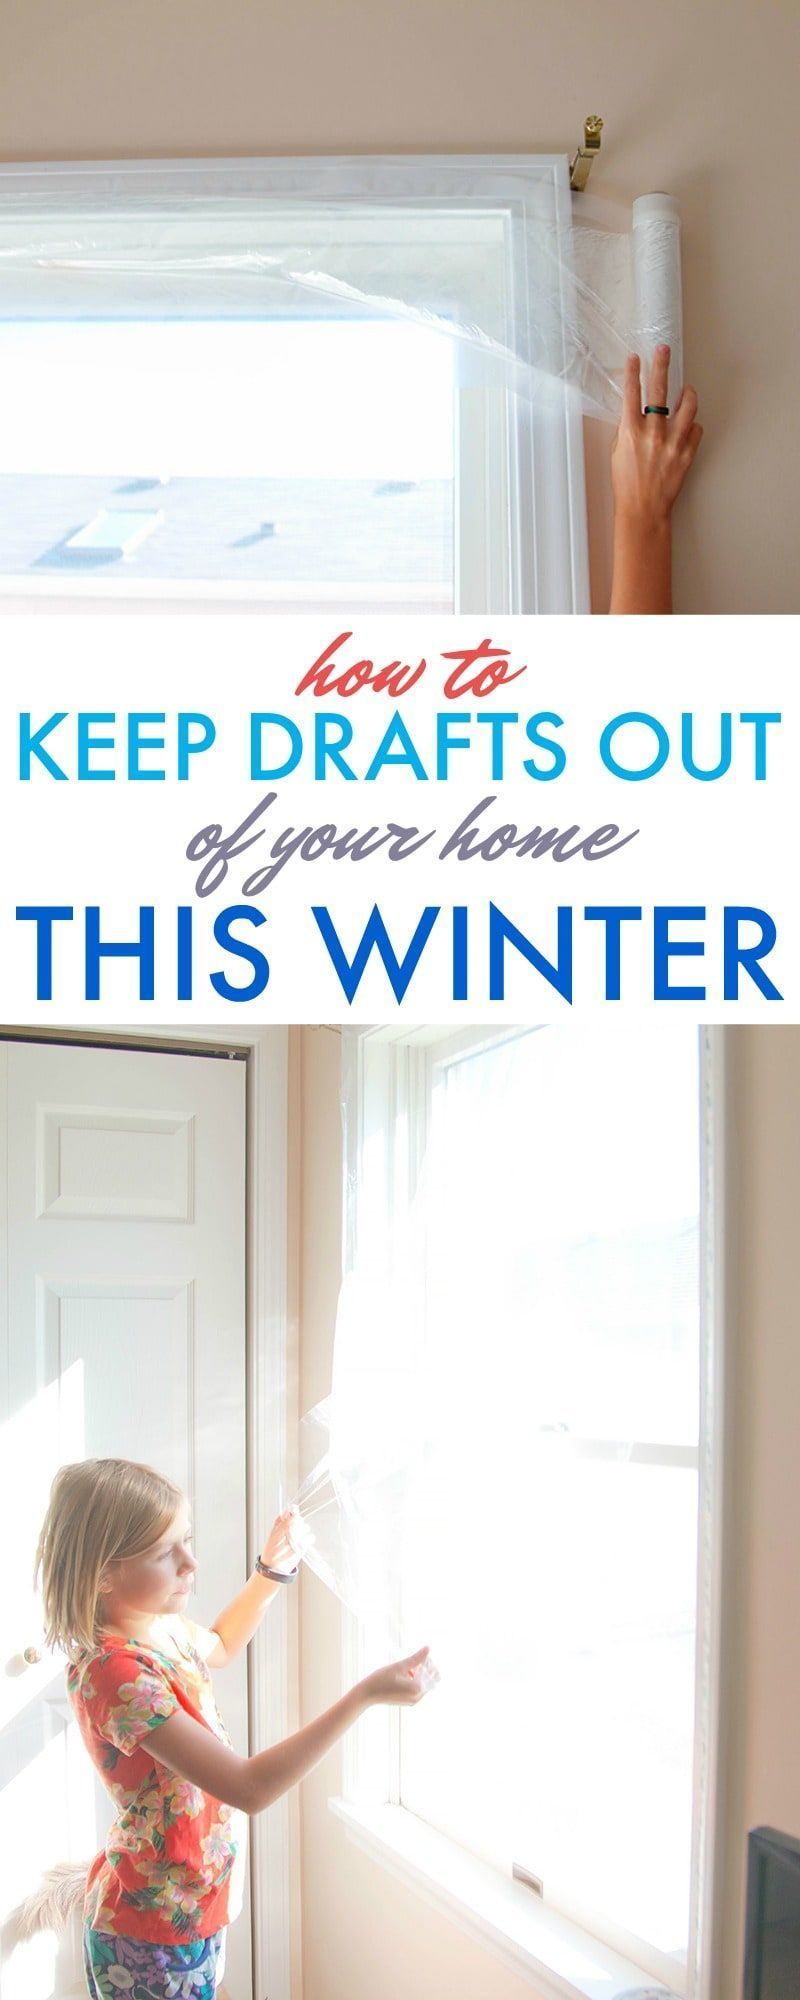 Old window ideas for outside  windows u doors can be drafty and cause high heating costs learn